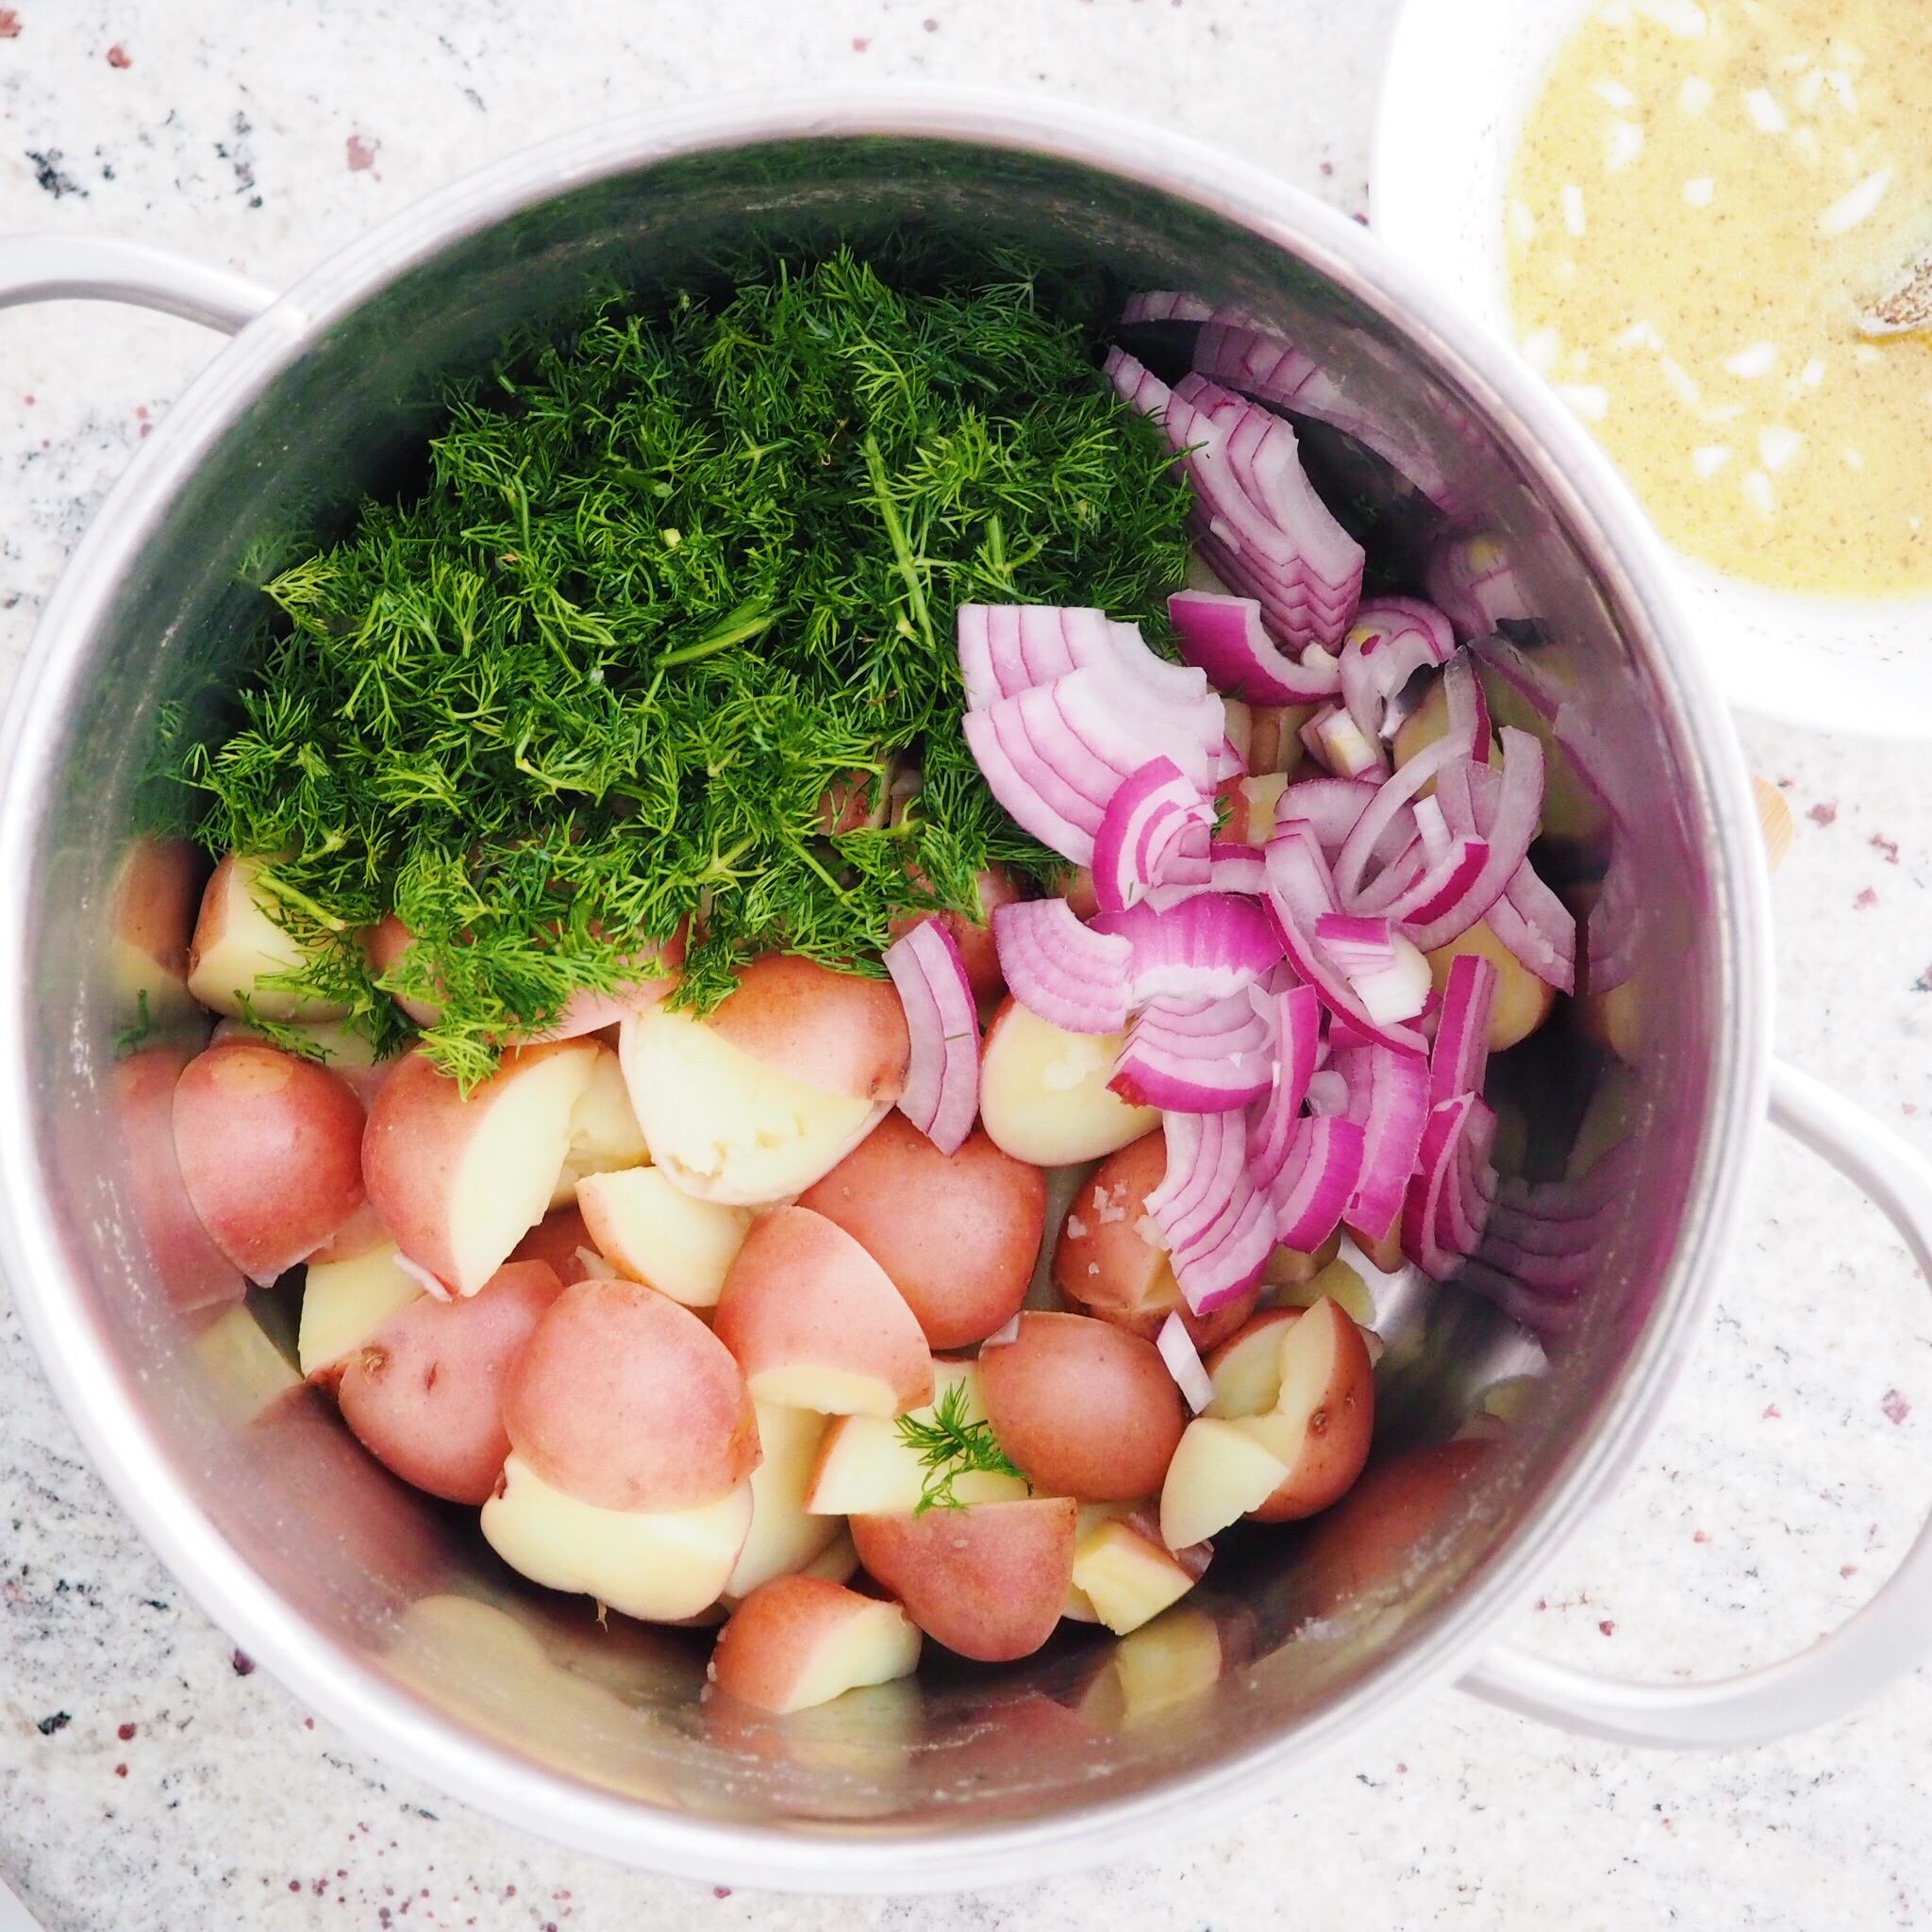 Step 6 - Into the same pot, add red onions, fresh dill and dressing ingredients